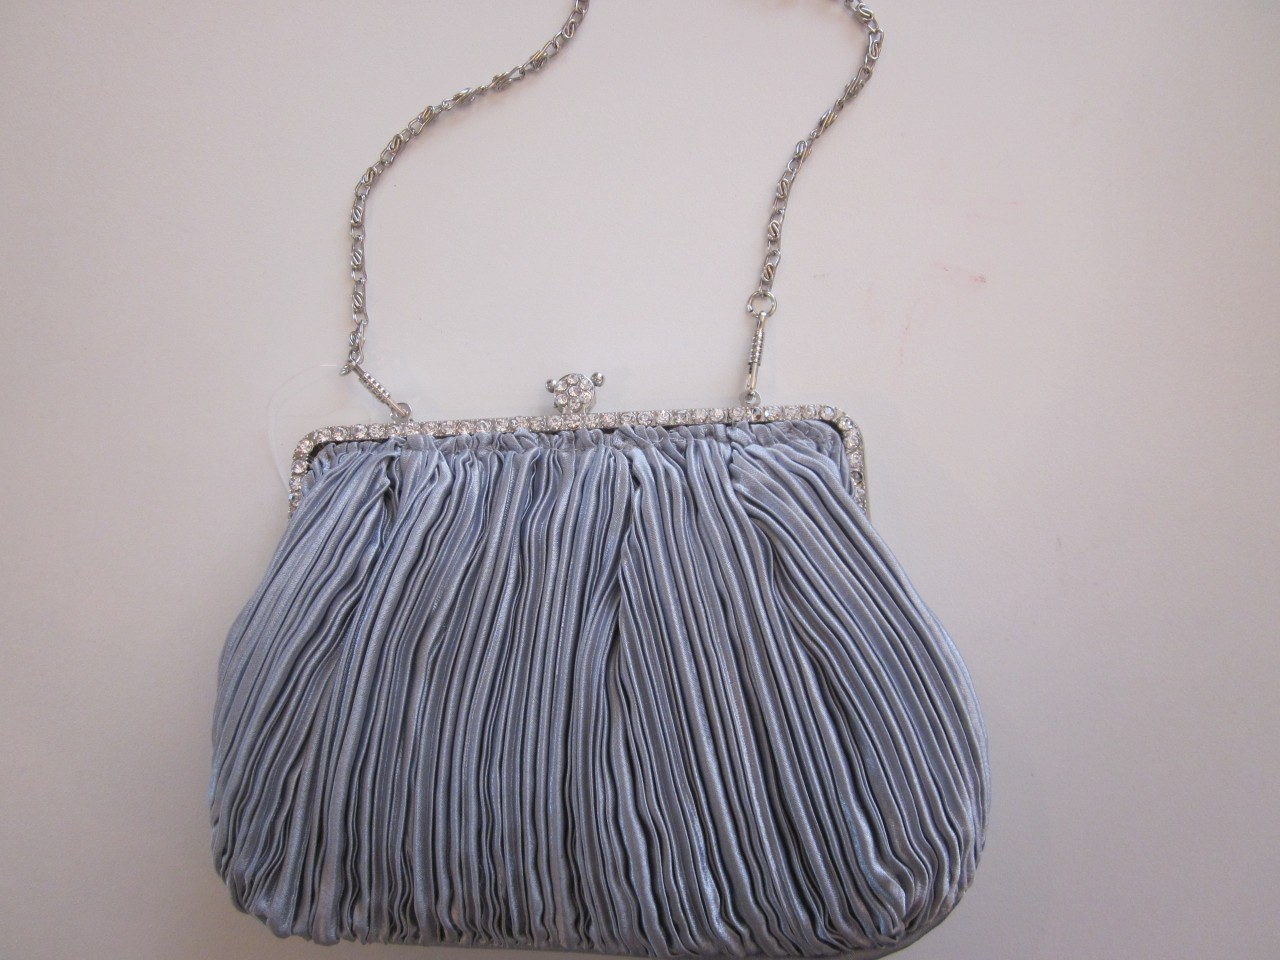 New-Elegant-Evening-Bag-perfect-for-any-occasion-great-prom-wedding-bag